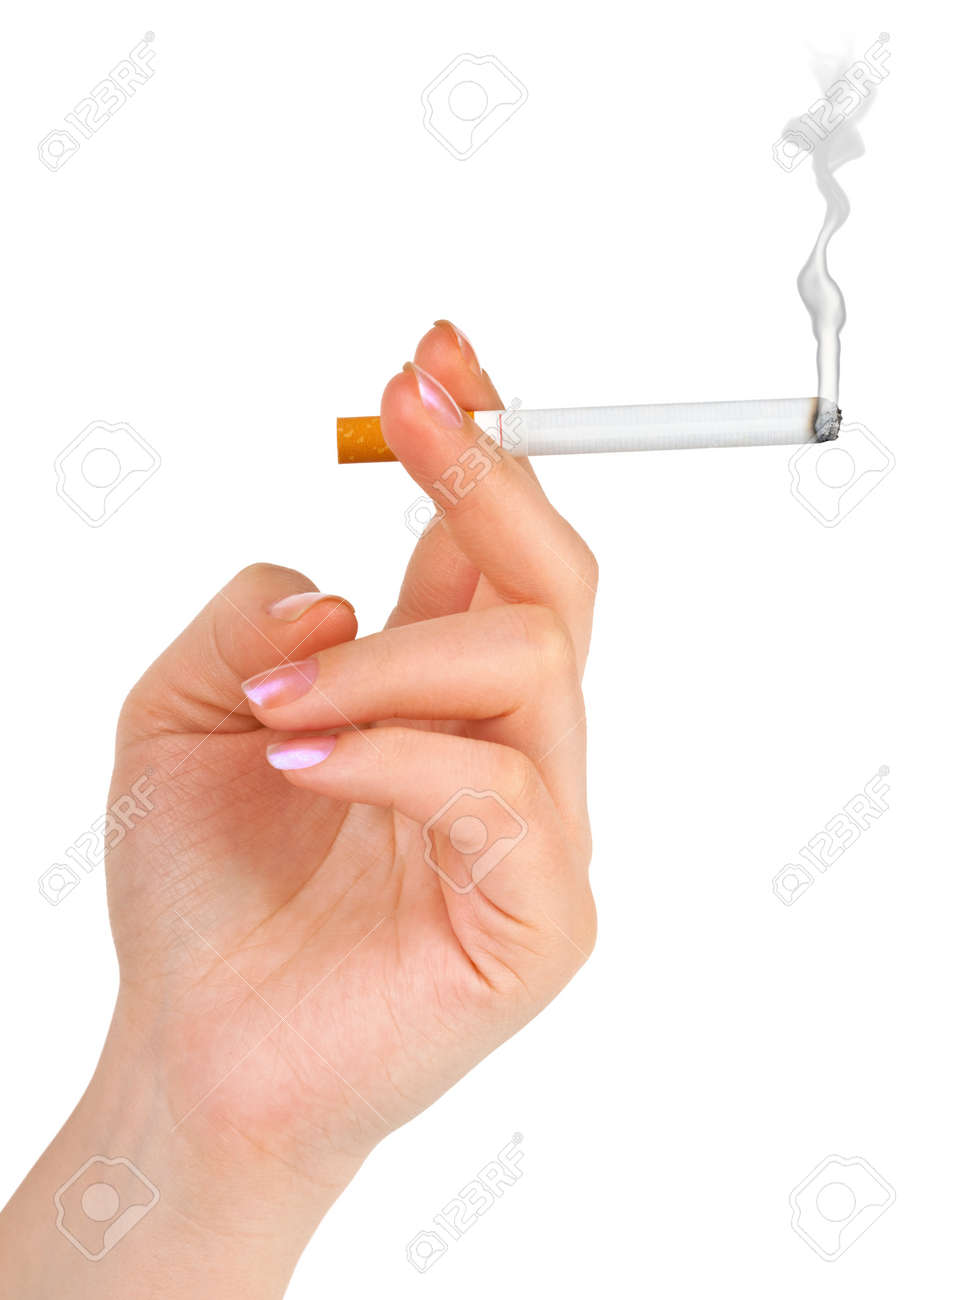 http://previews.123rf.com/images/violin/violin1008/violin100800051/7640909-Hand-with-cigarette-isolated-on-white-background-Stock-Photo.jpg